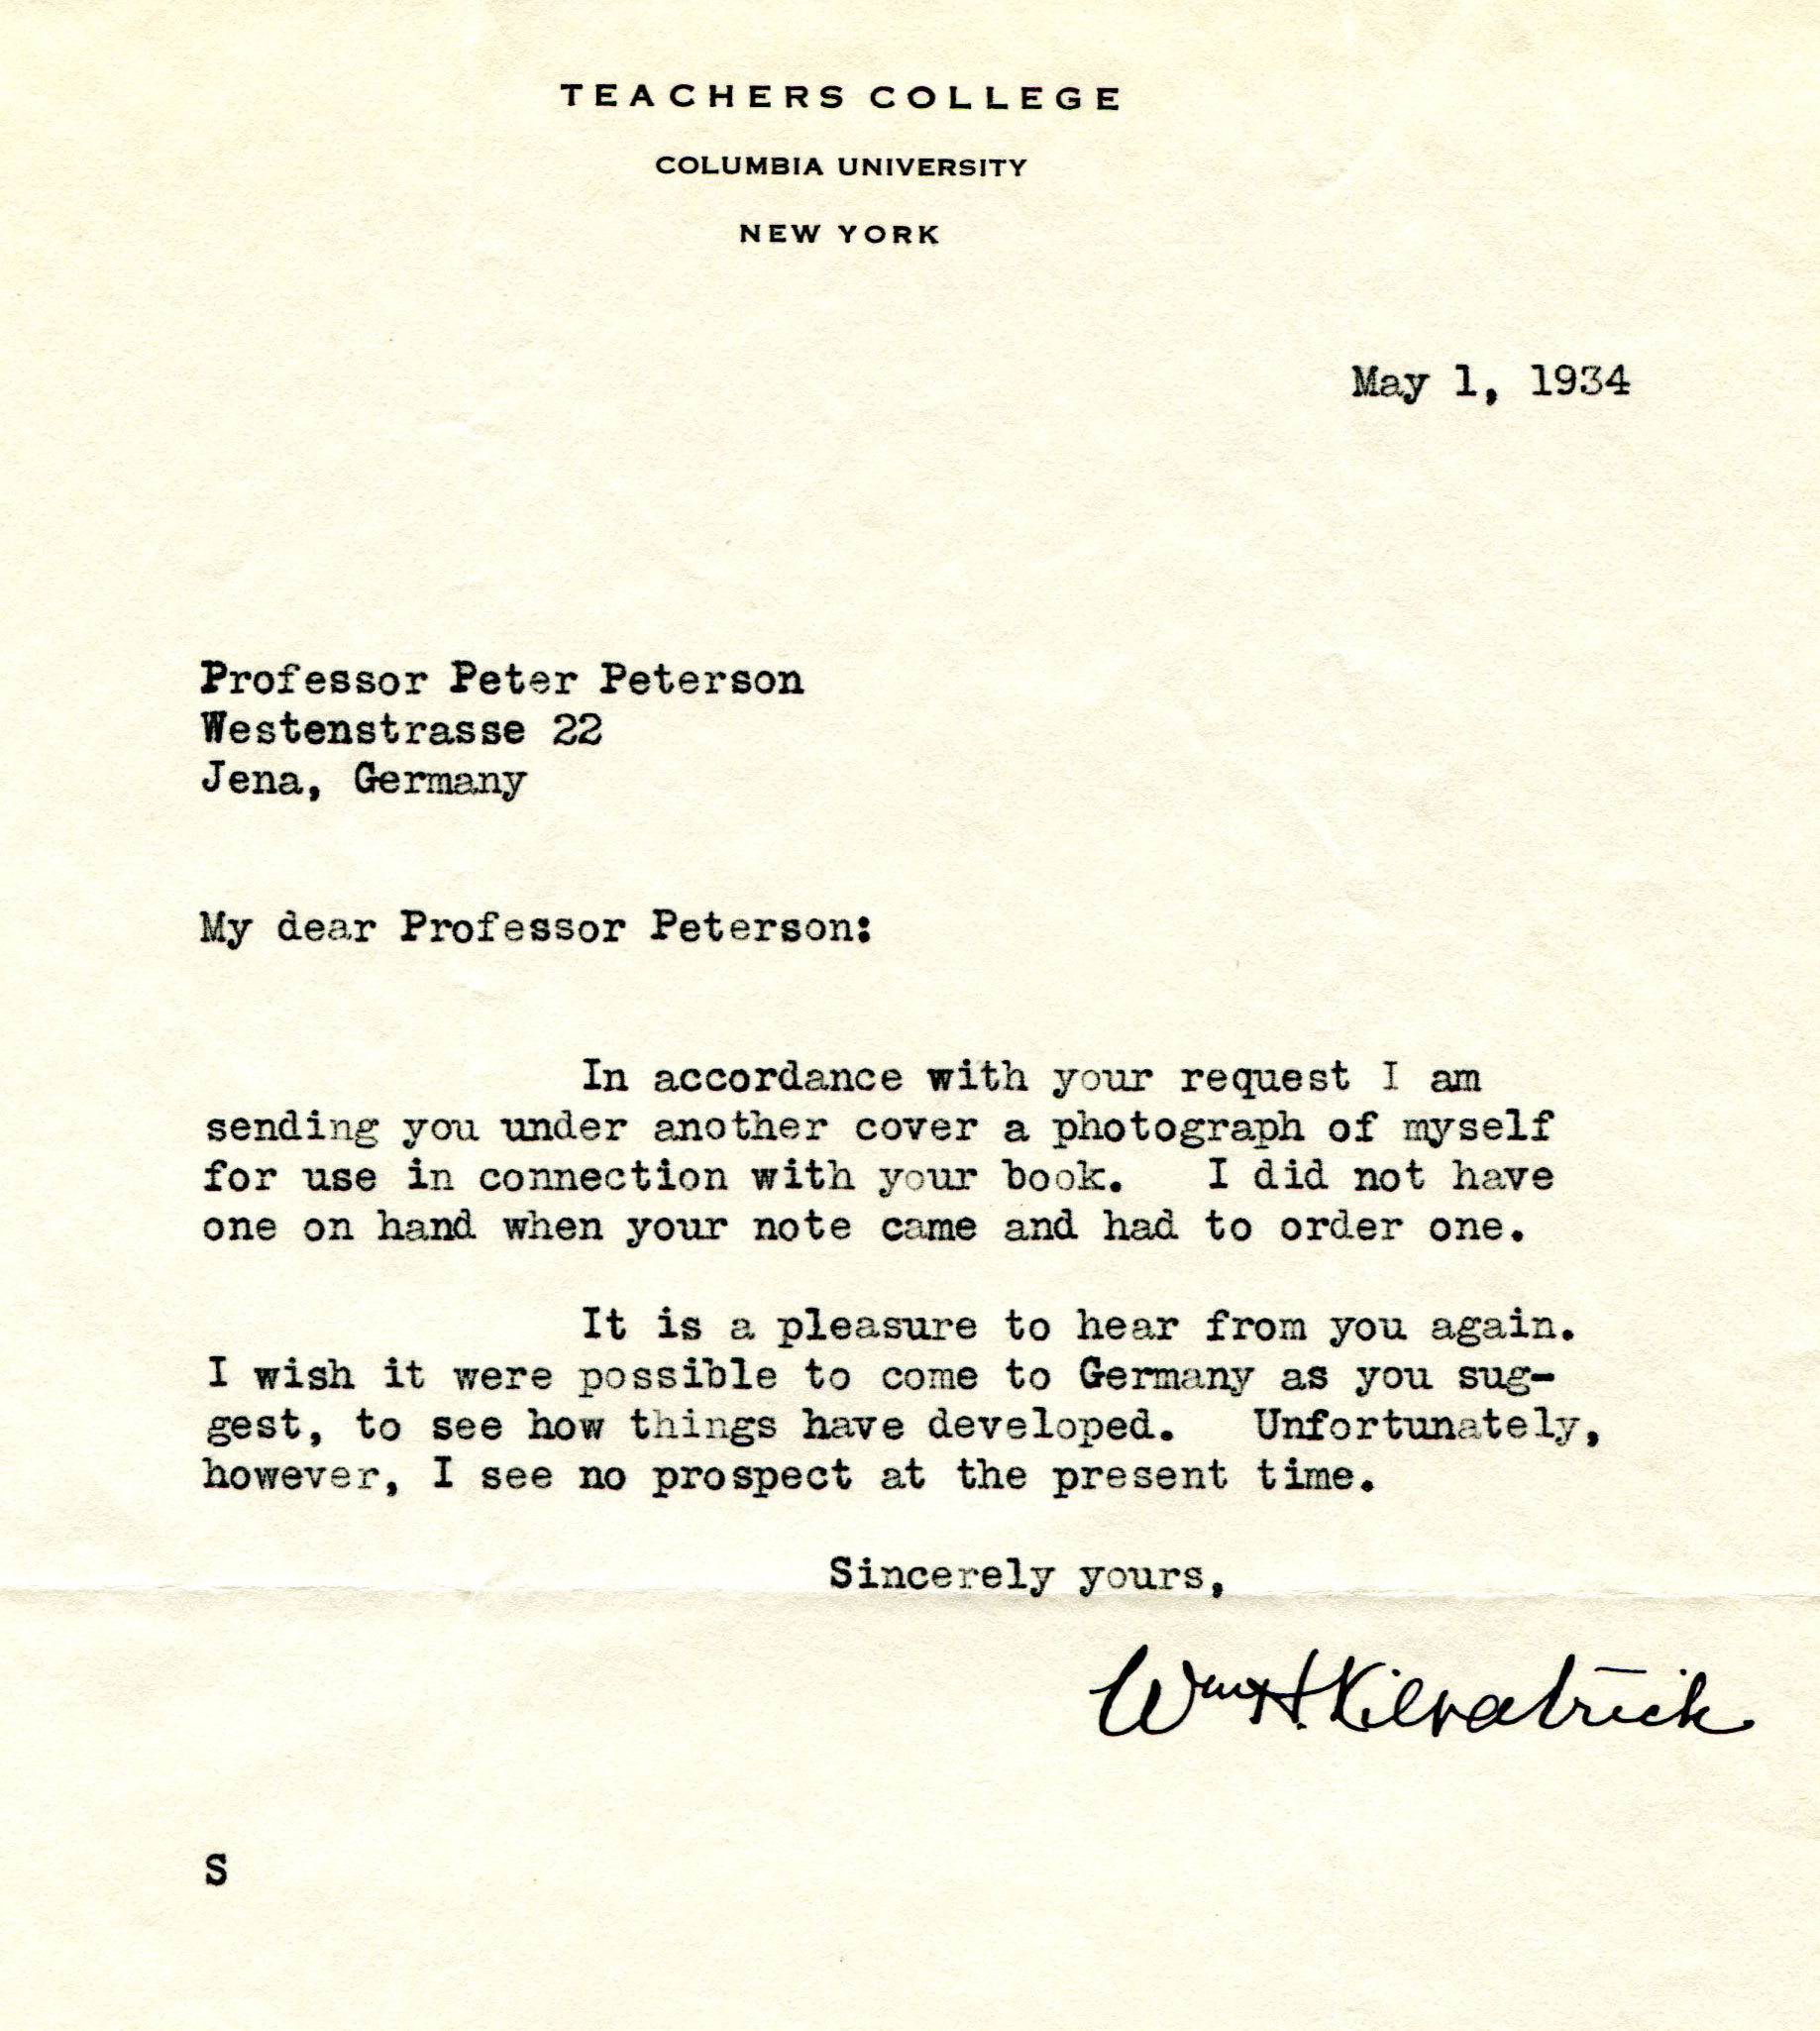 Figure 10: Letter of W.H. Kilpatrick to P. Petersen, dated May 1st, 1934 (Source: PPAV)